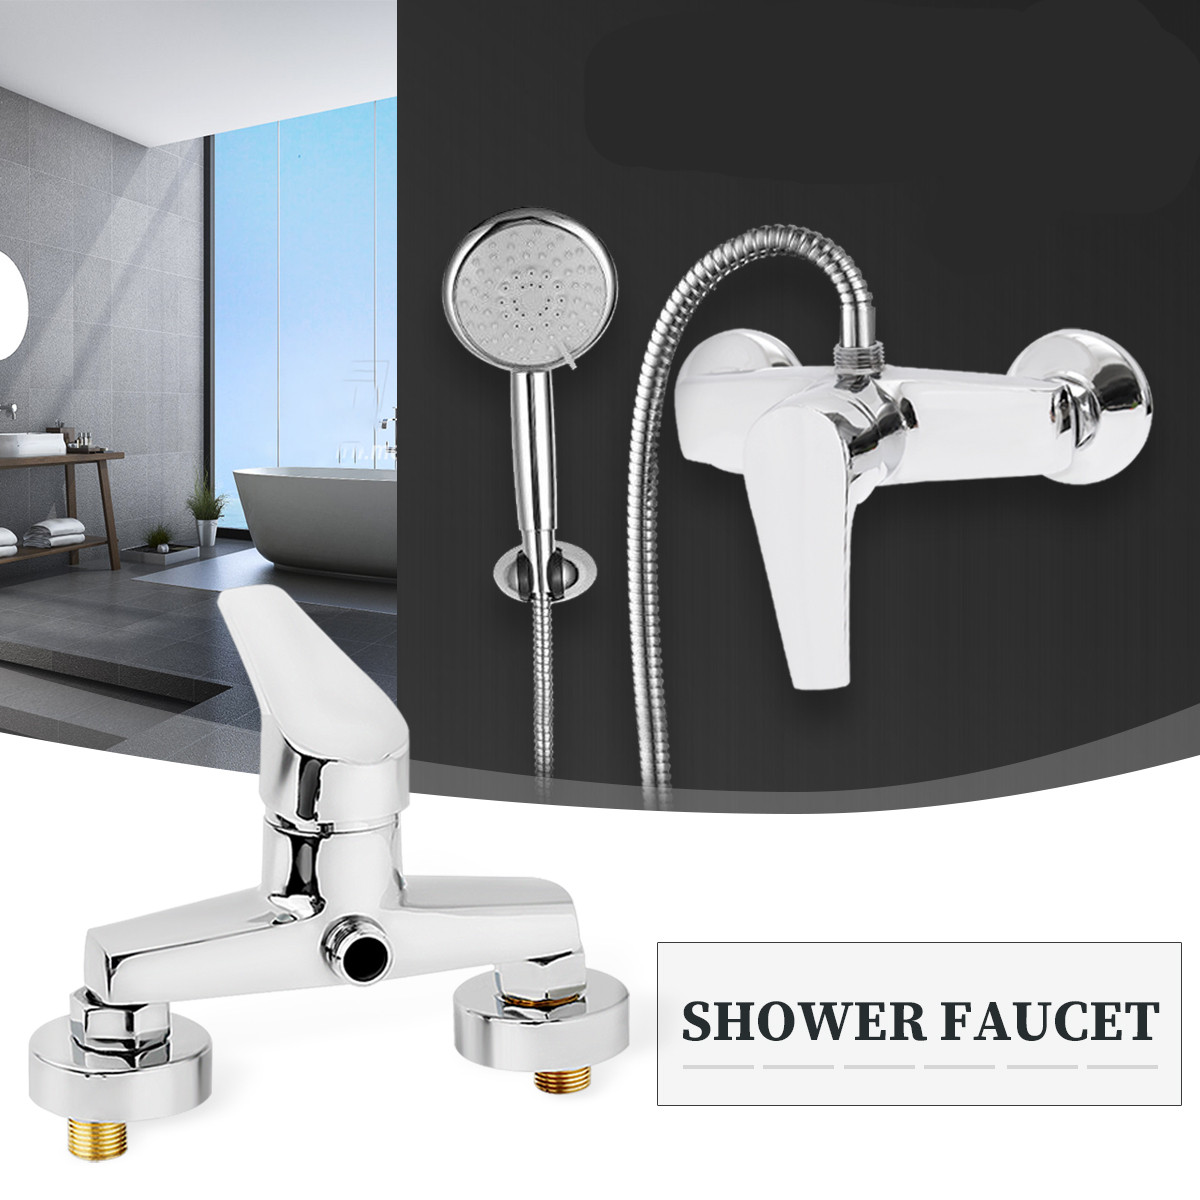 Xueqin G1/2 Copper Thermostatic Shower Faucet Mixer Value Wall Mounted Hot And Cold Taps Water Heater Mixing Valve Bathtub TapXueqin G1/2 Copper Thermostatic Shower Faucet Mixer Value Wall Mounted Hot And Cold Taps Water Heater Mixing Valve Bathtub Tap